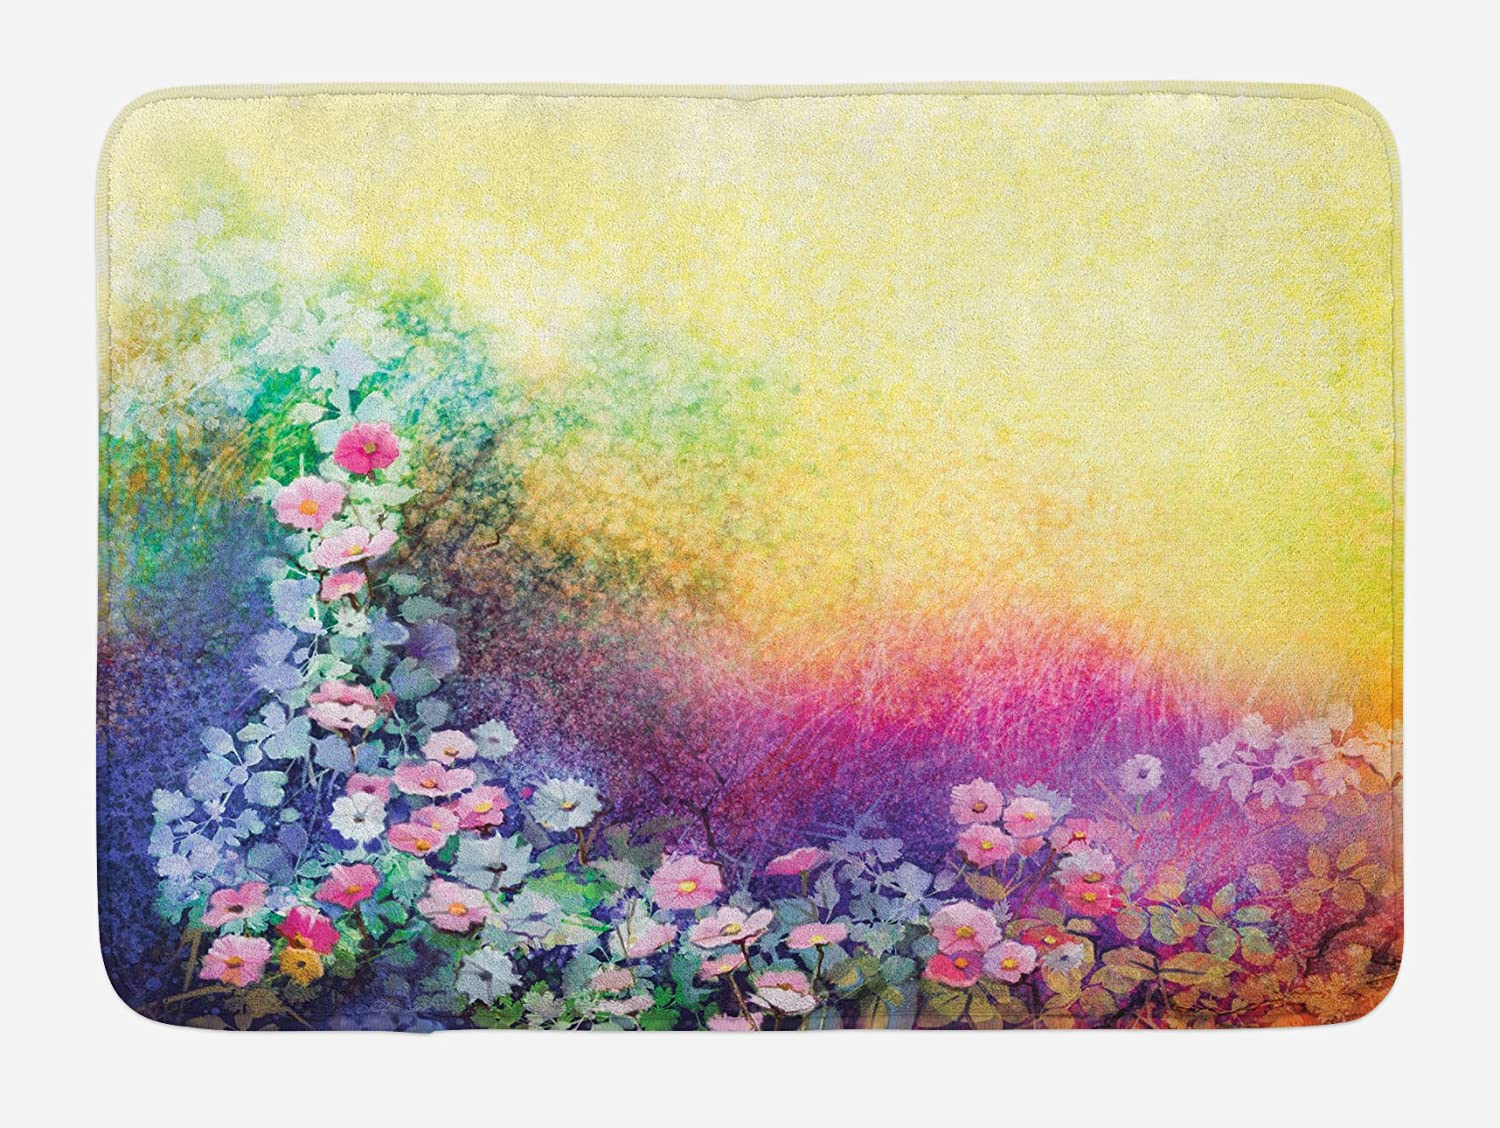 Ambesonne Flower Bath Mat, Ivy Floral Beauty in Spring Blooming Nature Soft Calm Paradise Print, Plush Bathroom Decor Mat with Non Slip Backing, 29.5